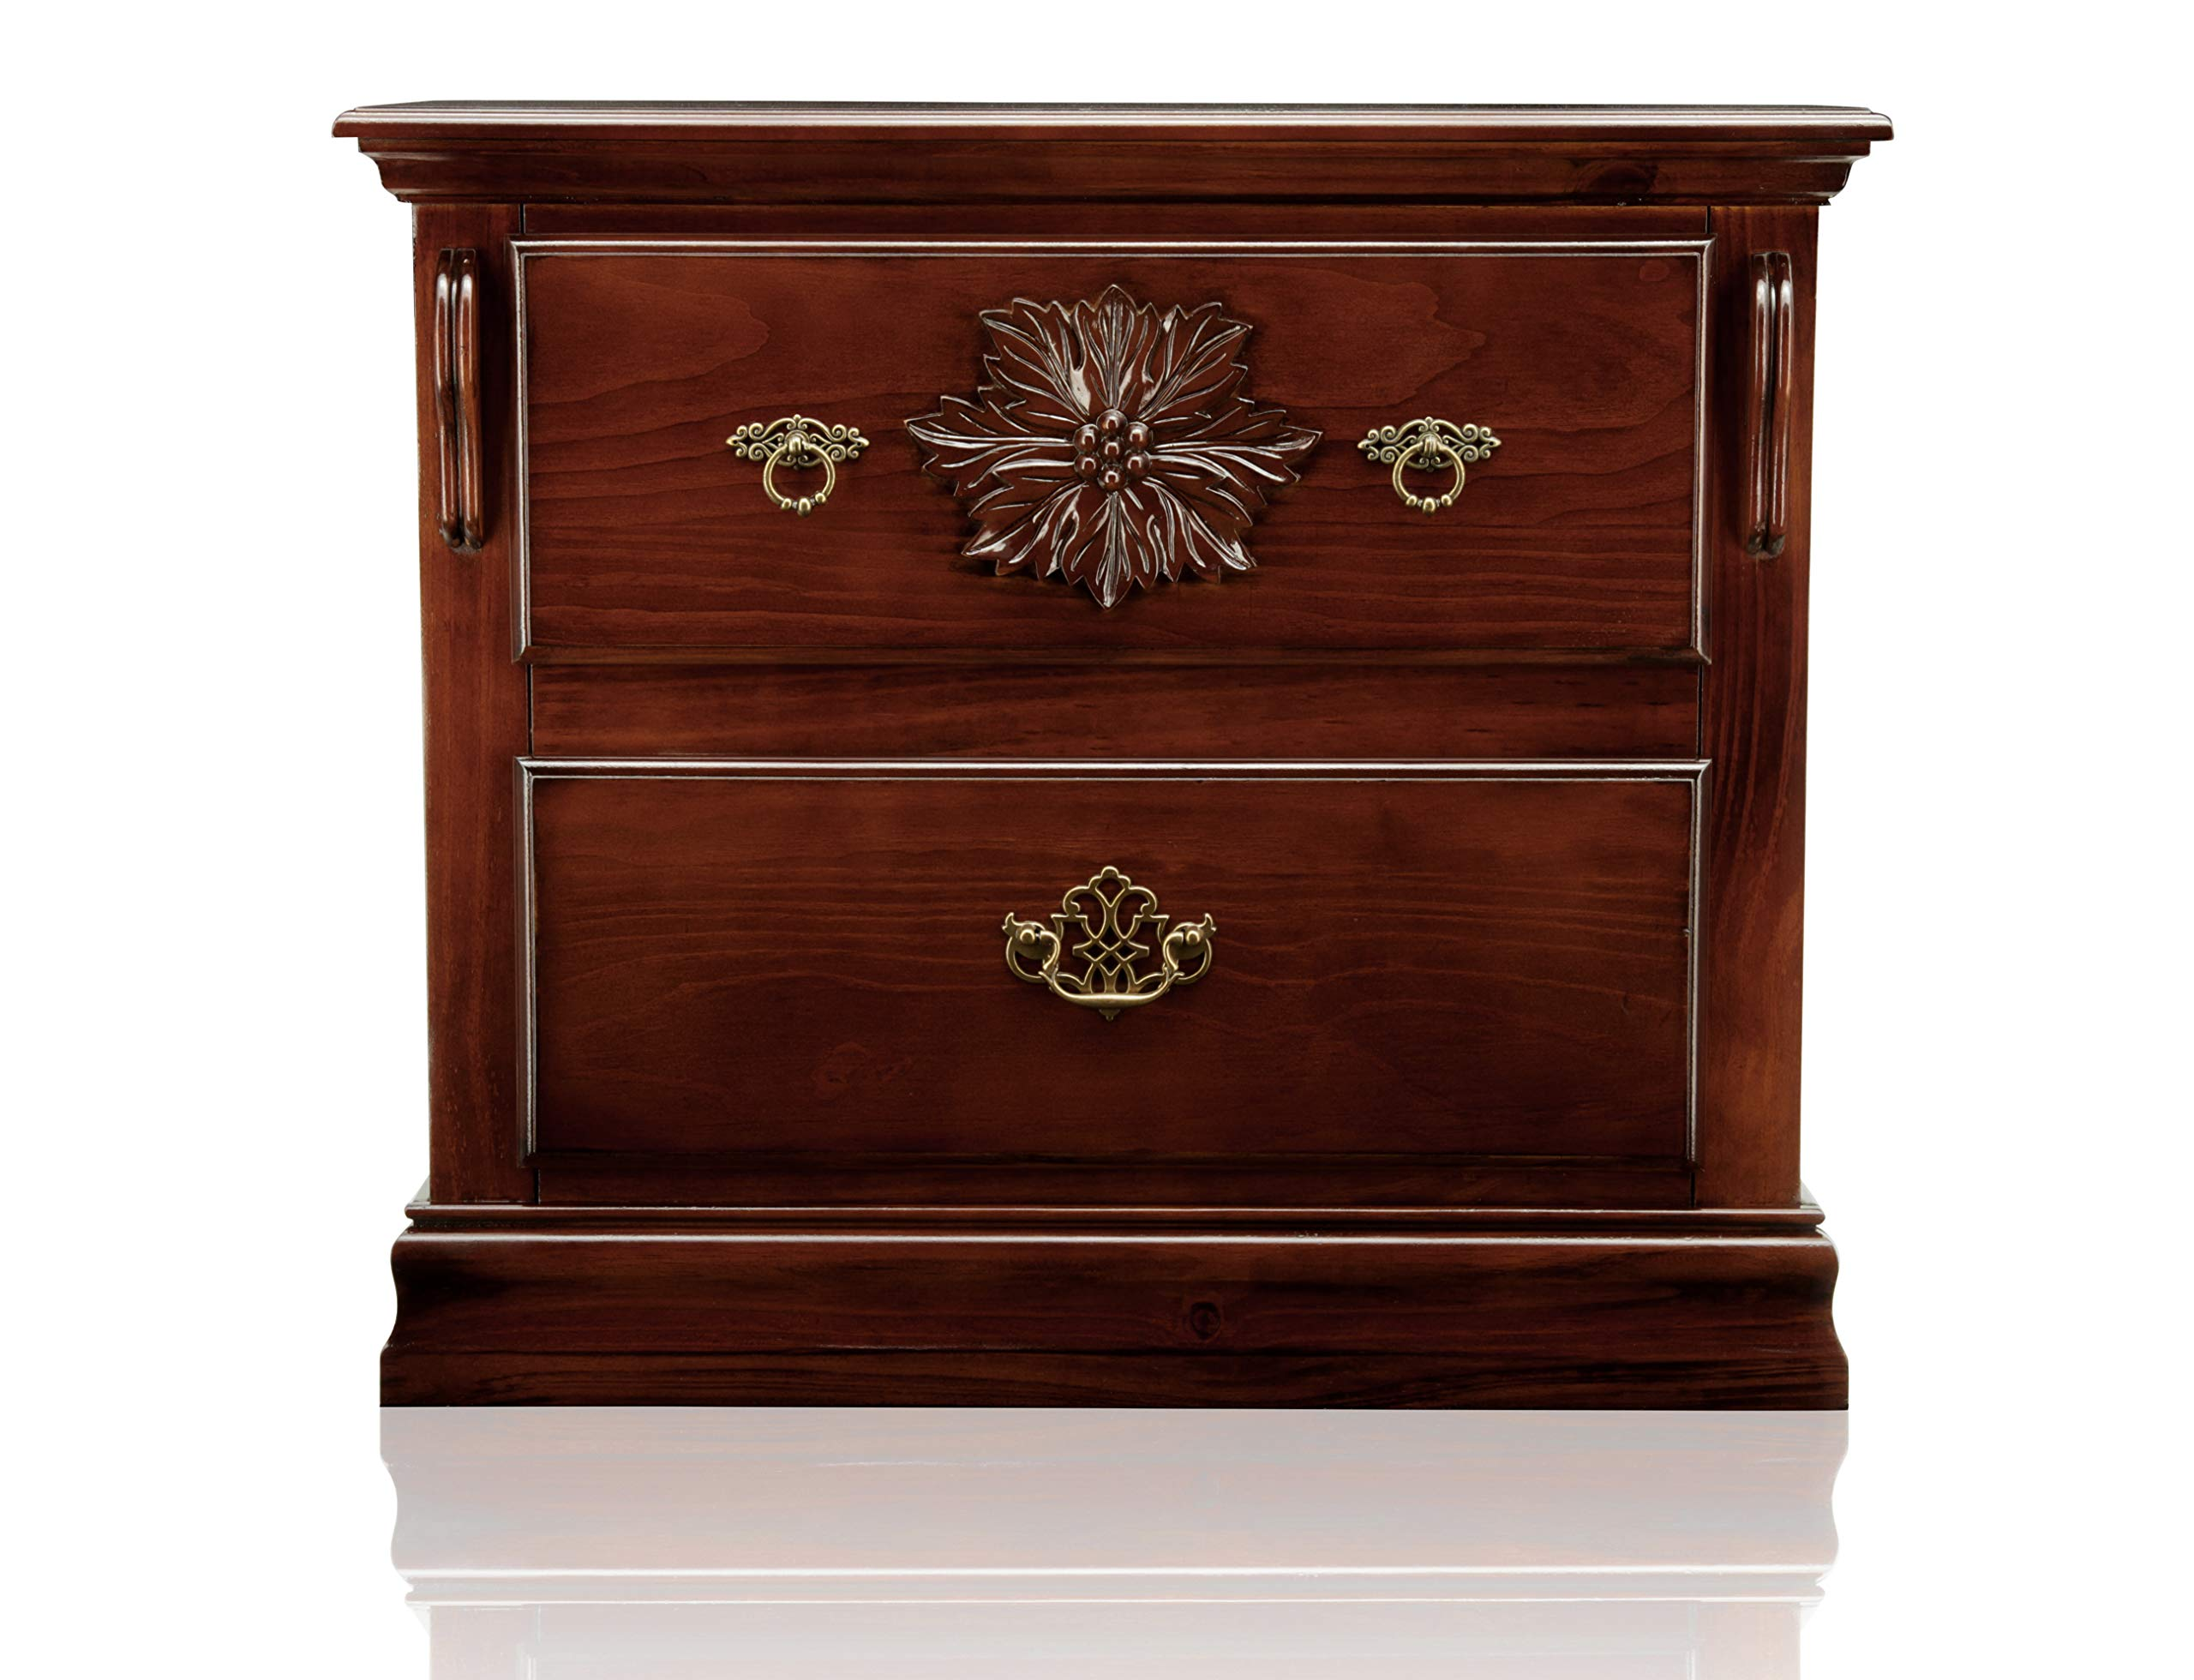 Furniture of America Scarlette Classic 2-Drawer Nightstand, Glossy Dark Pine by Furniture of America